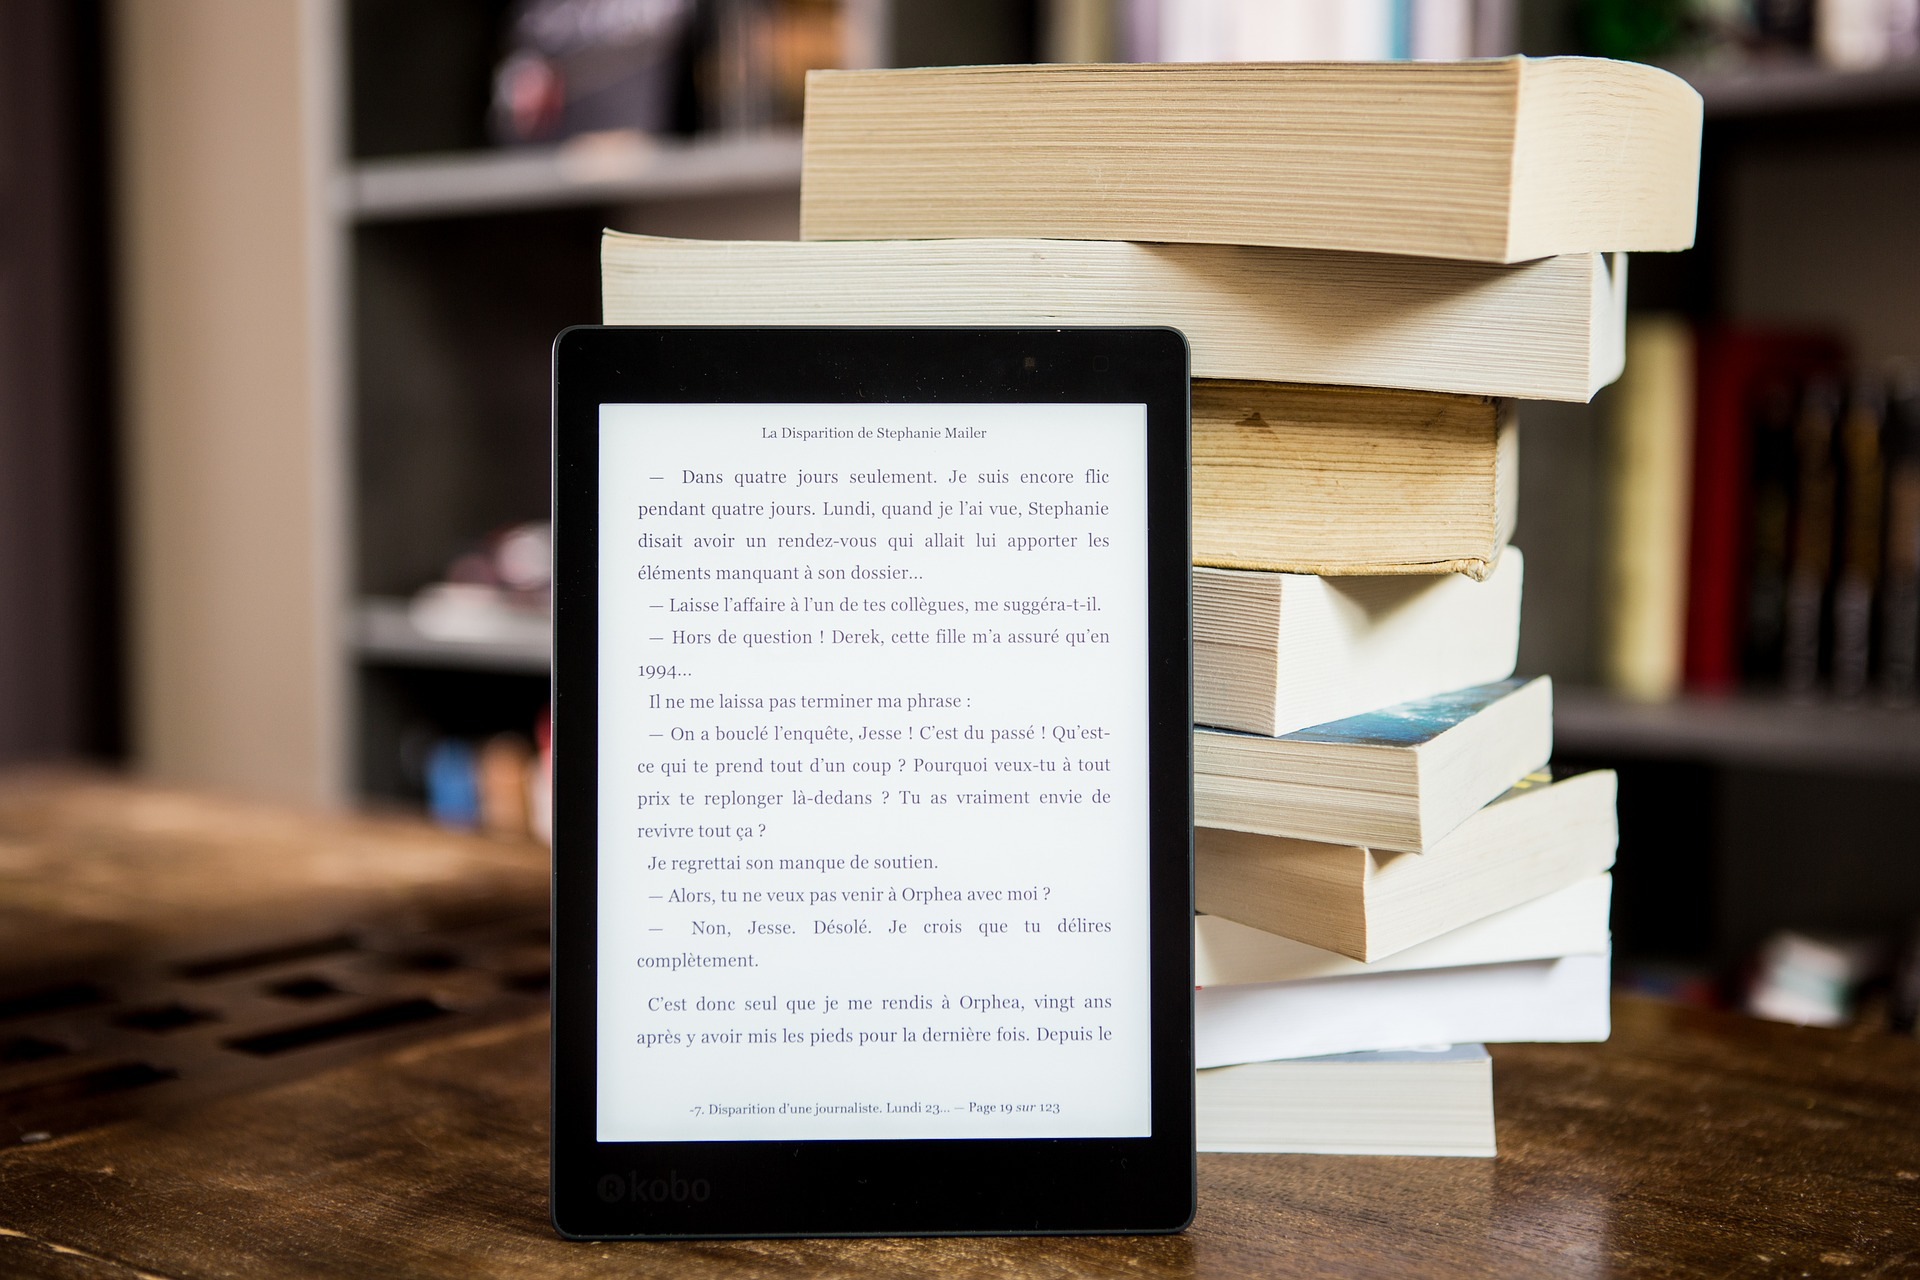 Electronic tablet in front of a stack of books